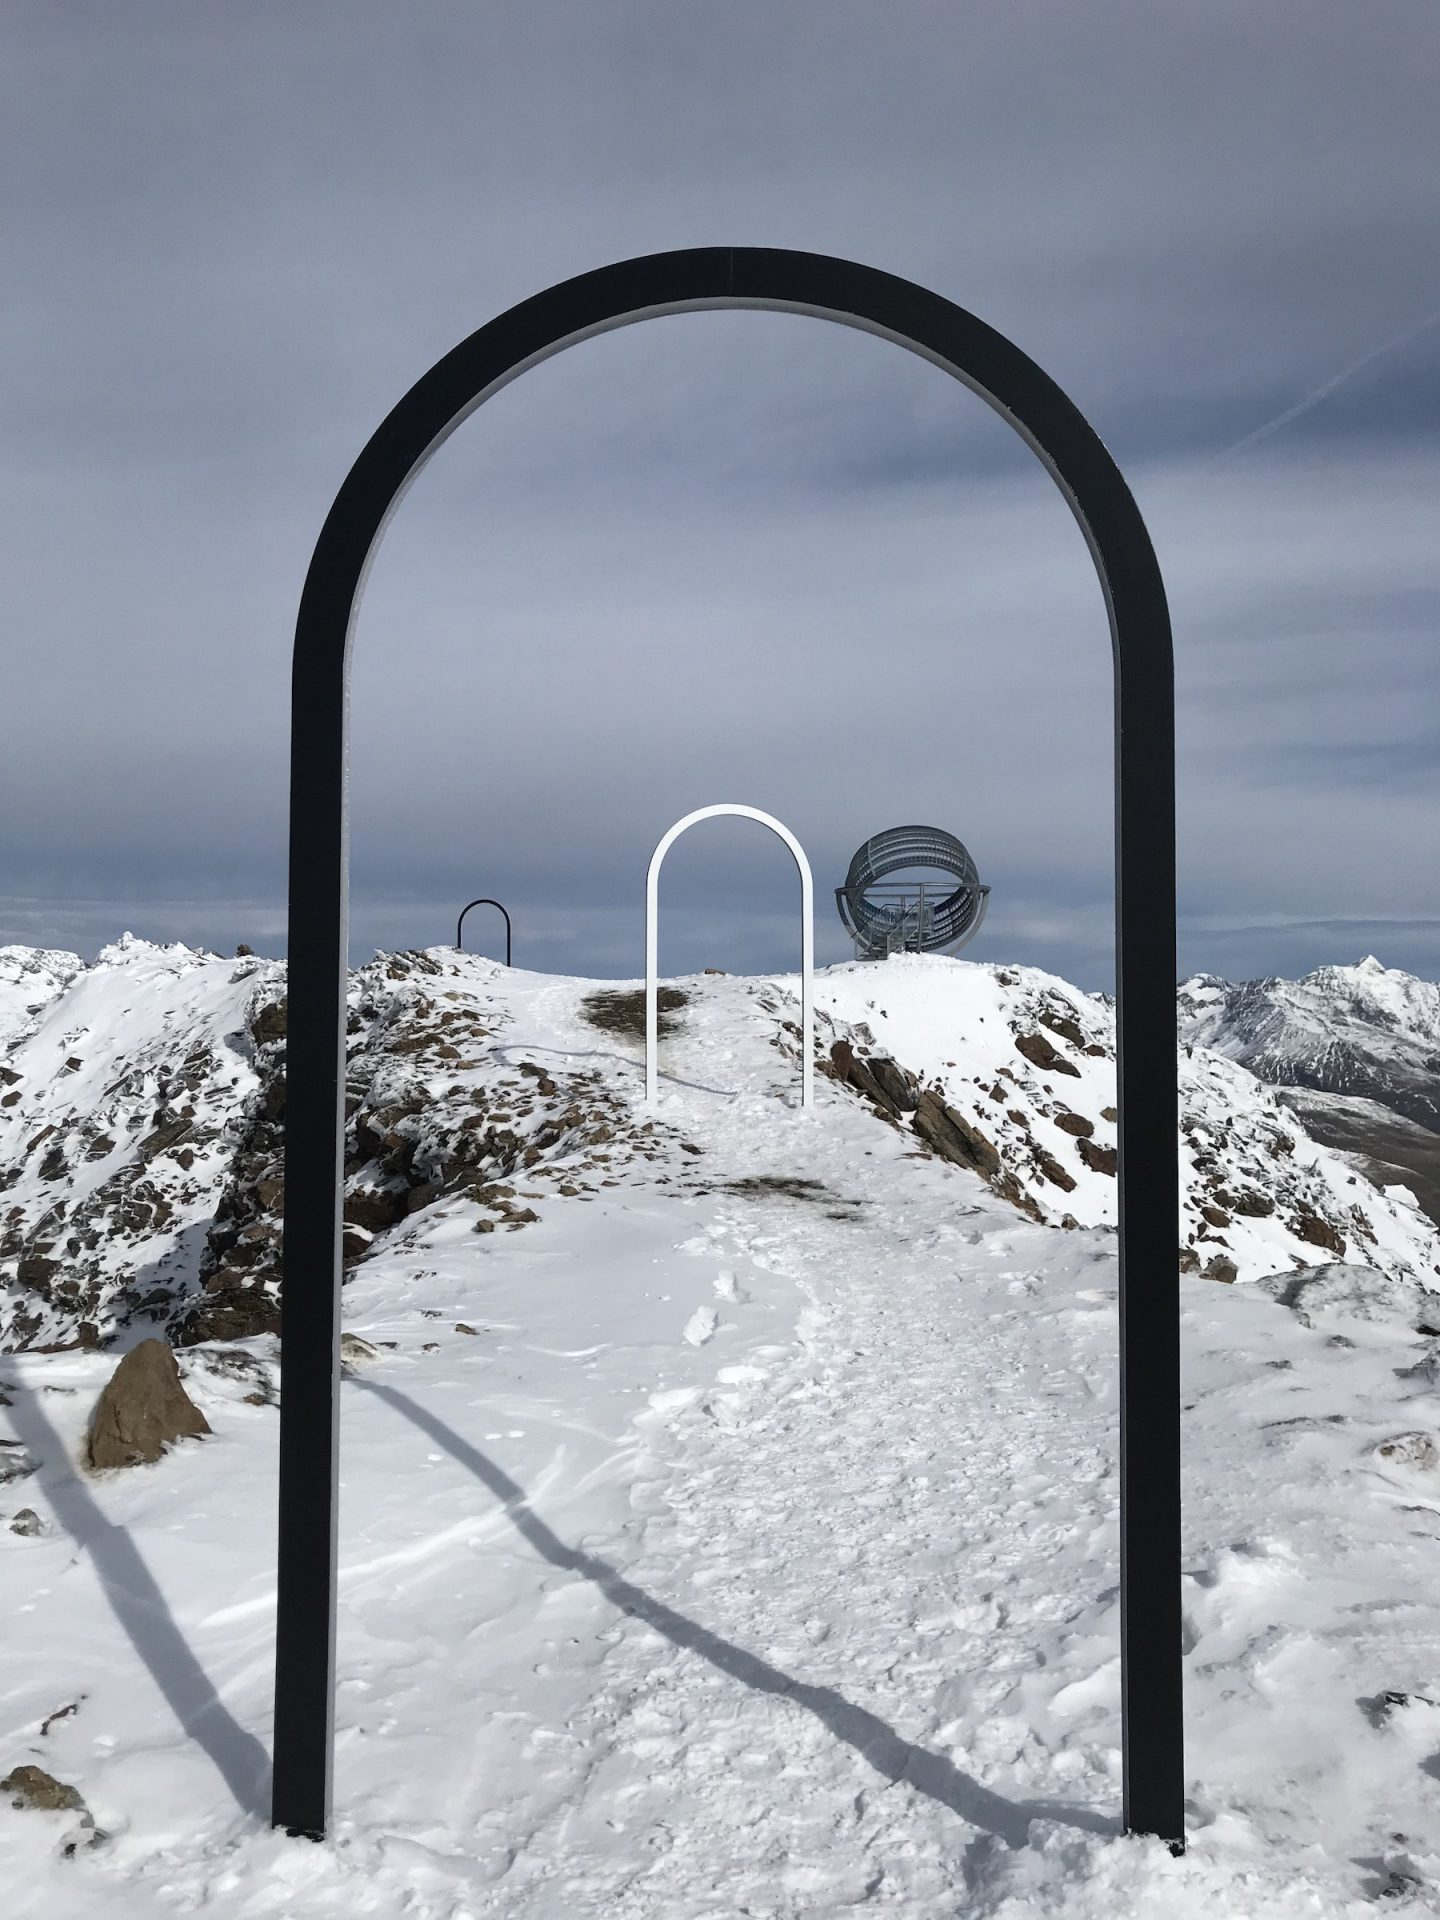 IGNANT-Art-Olafur-Eliasson-Our-Glacial-Perspectives-03-min